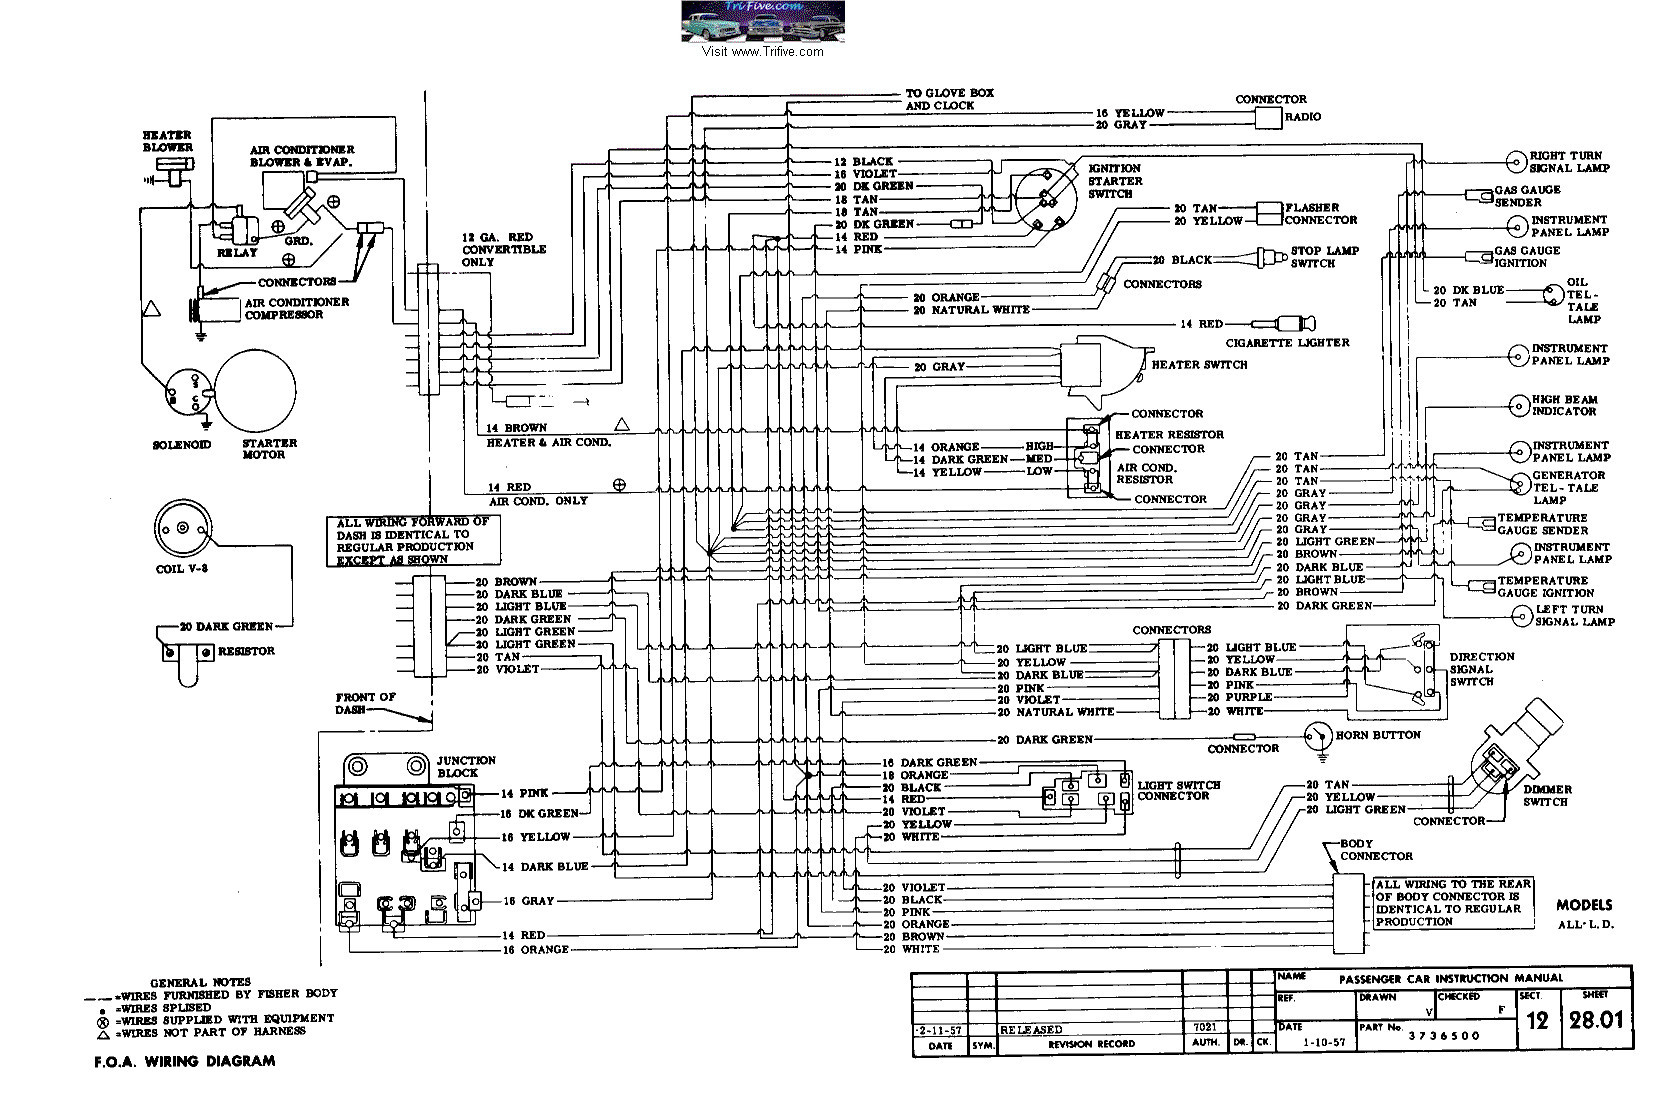 chevy truck wiring diagram additionally 2007 chevy silverado wiring rh organigy co